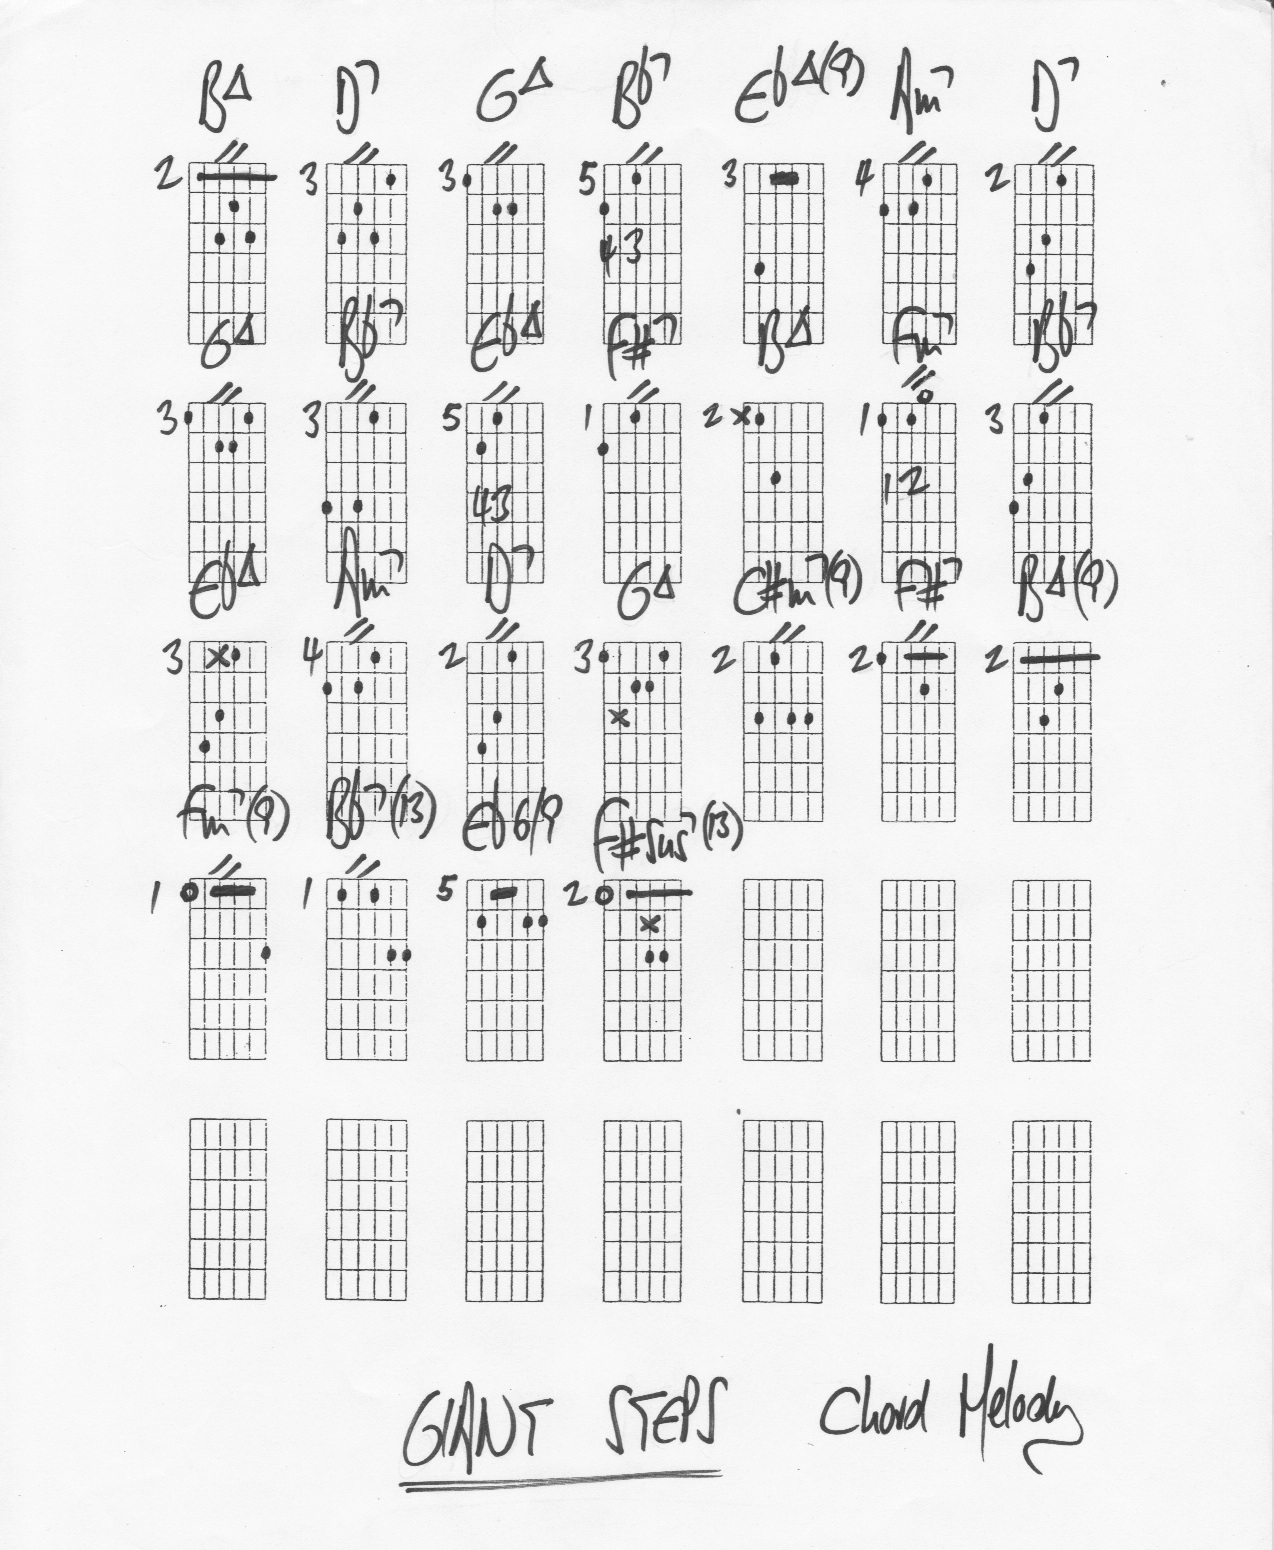 Jazz chords studies harmonized melodies comping studies chords click here for explanations on reading the chord diagram studies hexwebz Choice Image